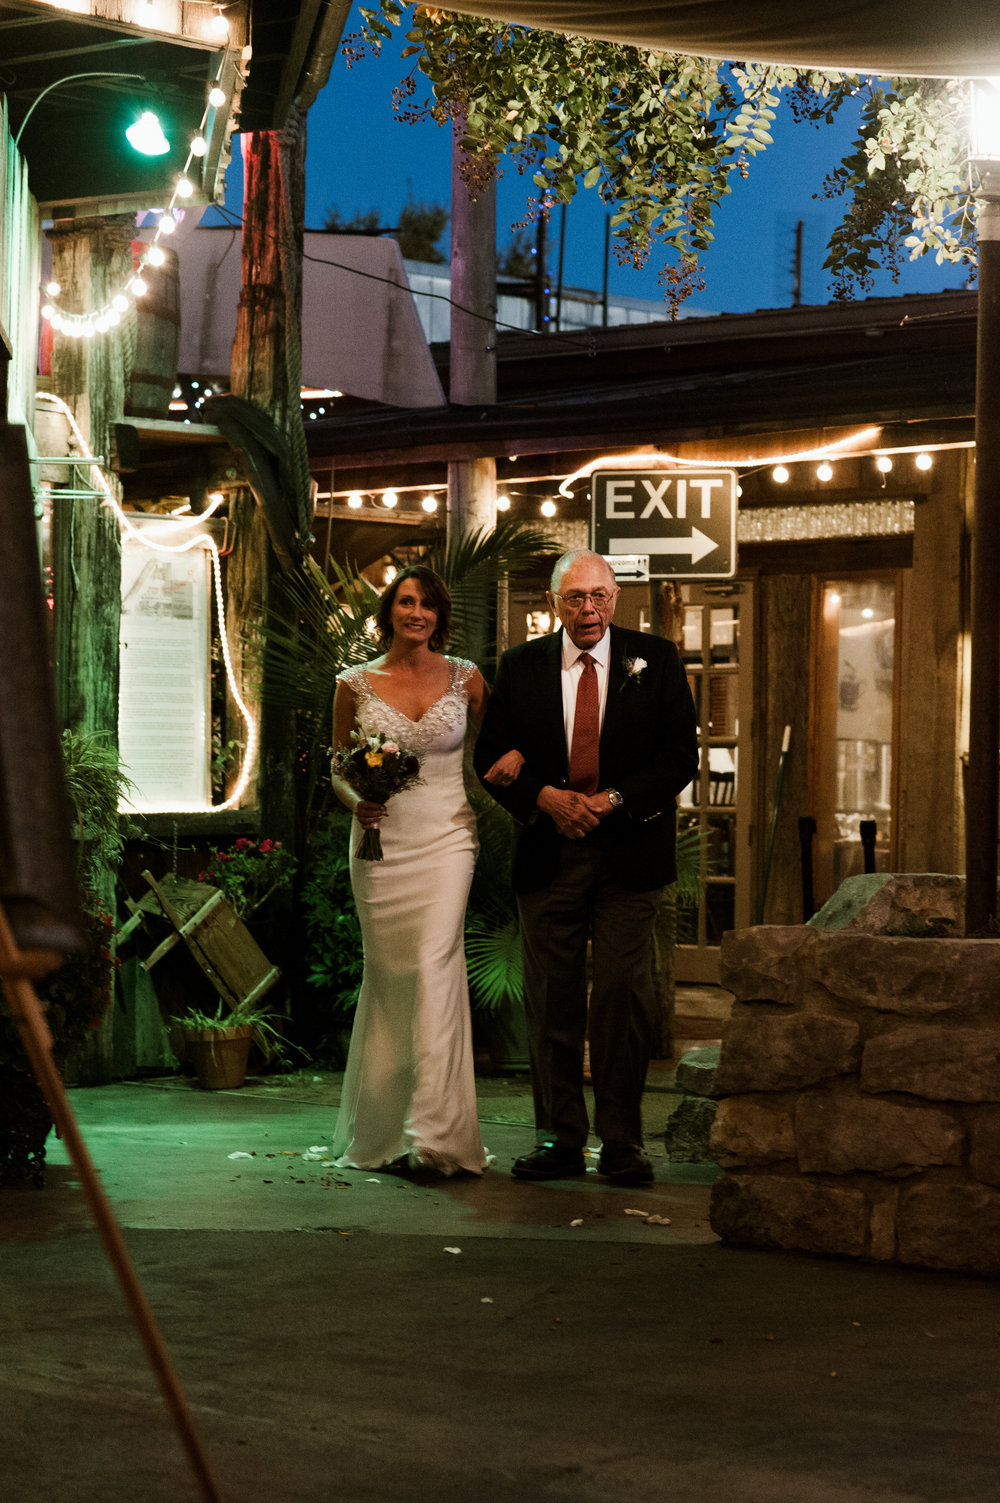 cara-and-dewayne-huntsville-alabama-wedding-november-2016-meg-hill-photo- (496 of 679).jpg